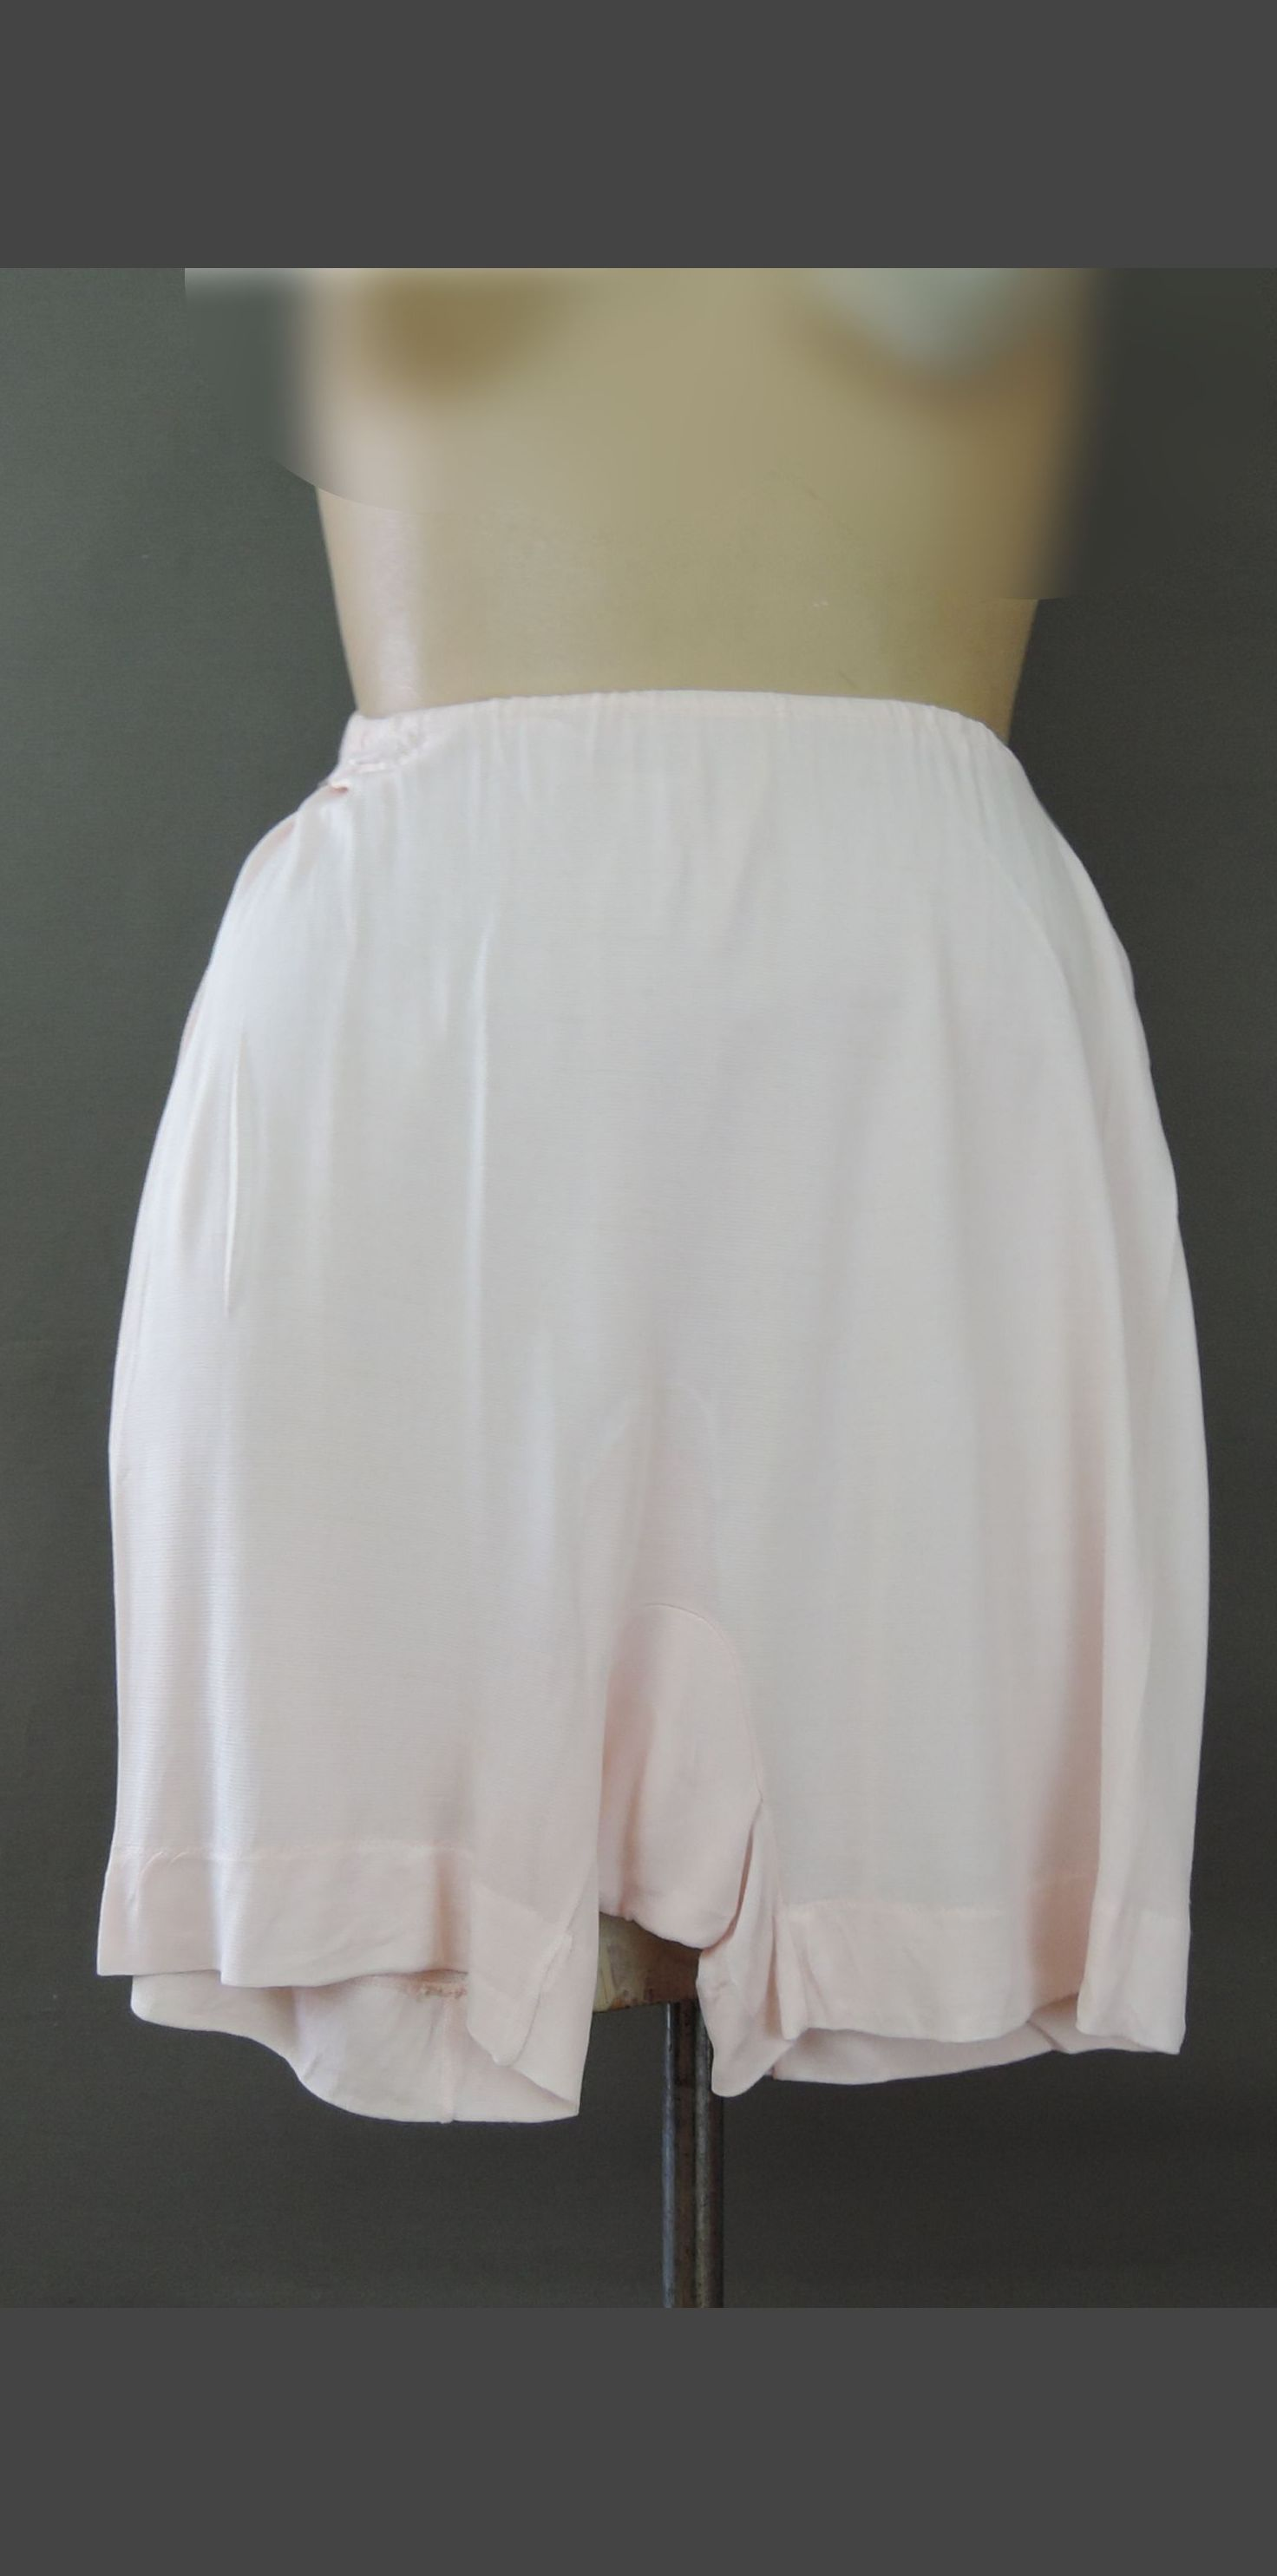 Vintage 1940s Rayon Jersey Panties, fits up to 26 inch waist, short boy leg